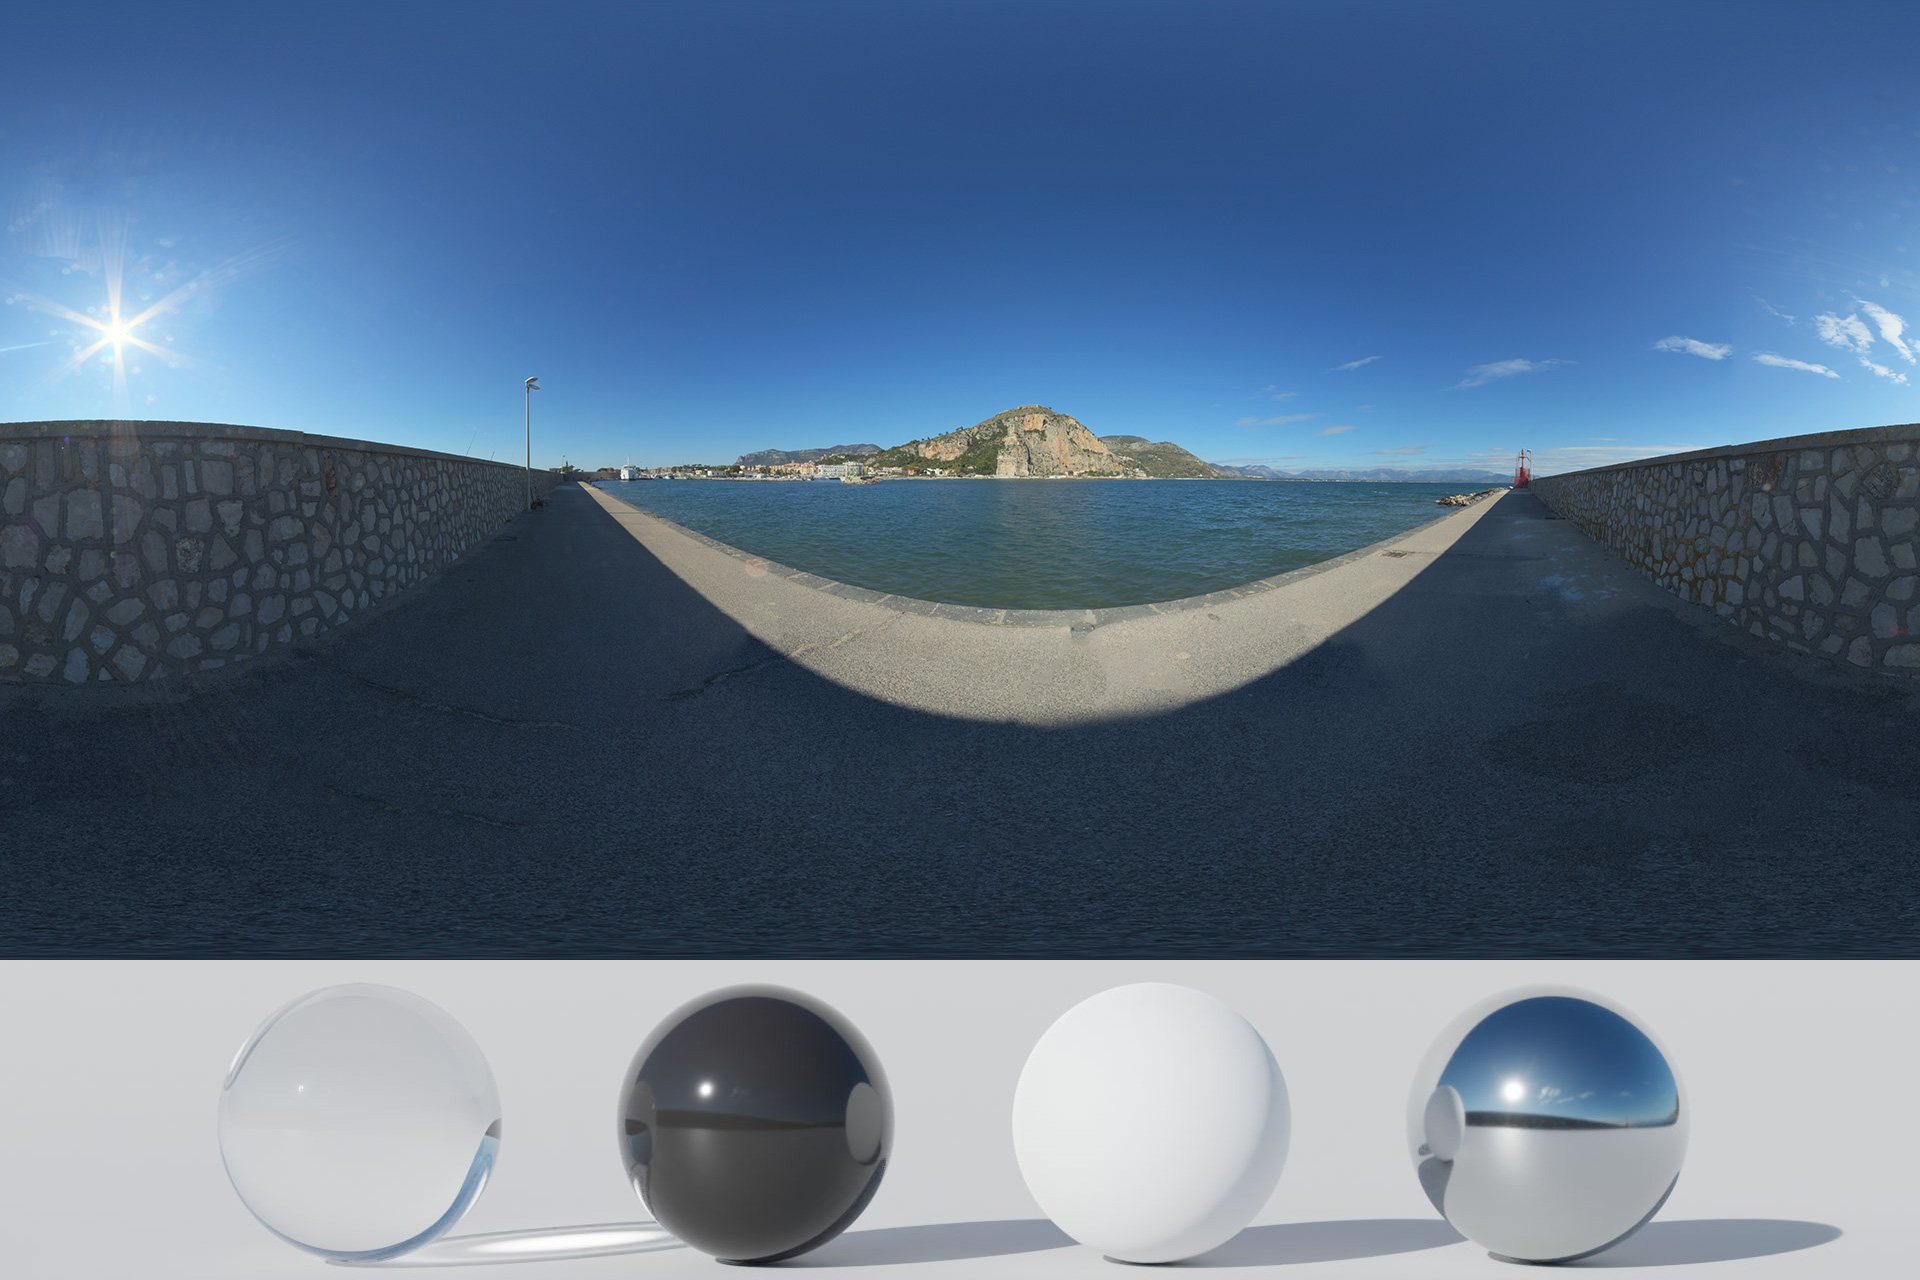 Download Awesome HDRi Port And Mountains